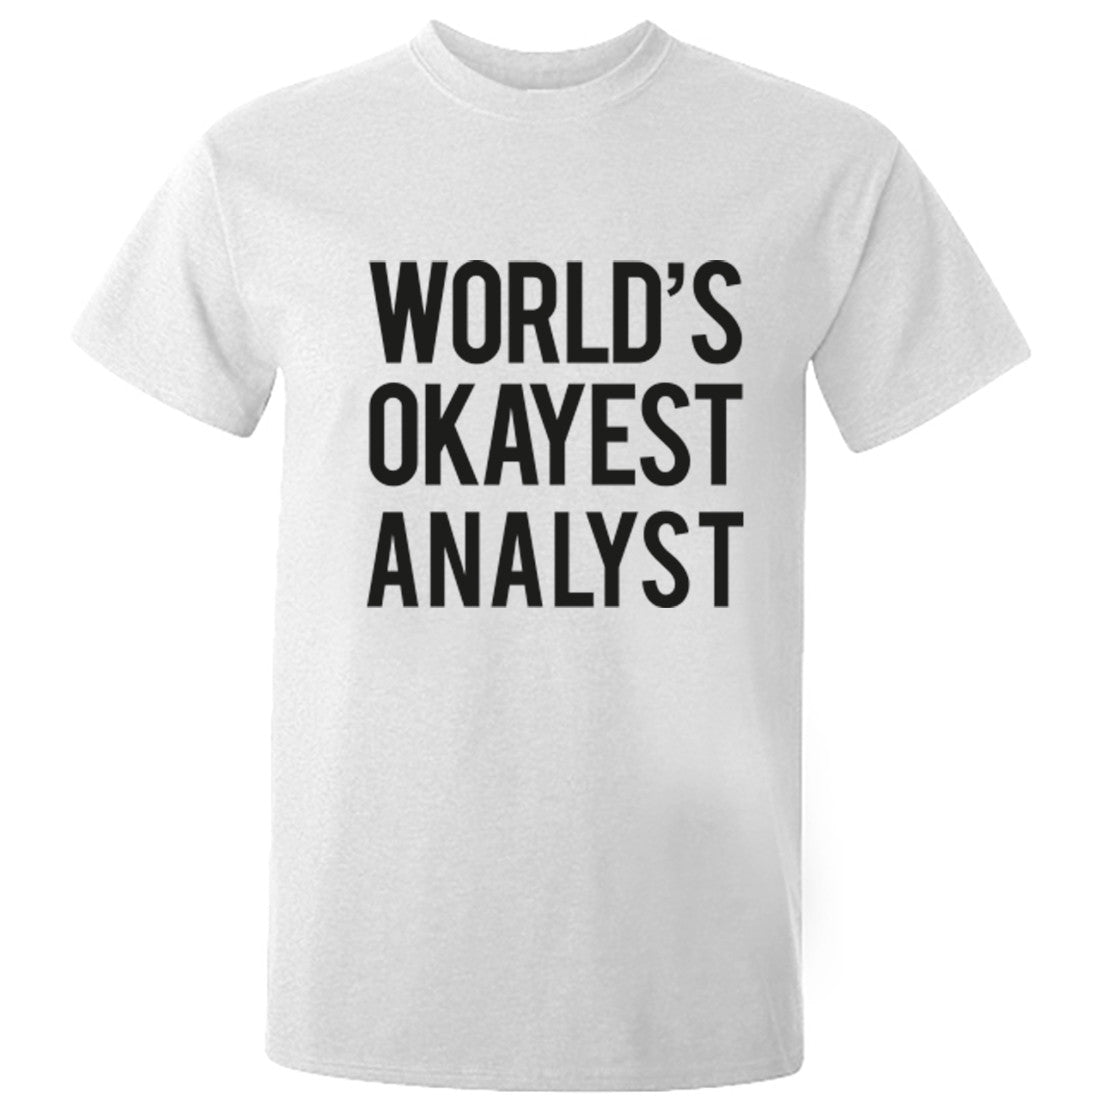 Worlds Okayest Analyst Unisex Fit T-Shirt K0492 - Illustrated Identity Ltd.